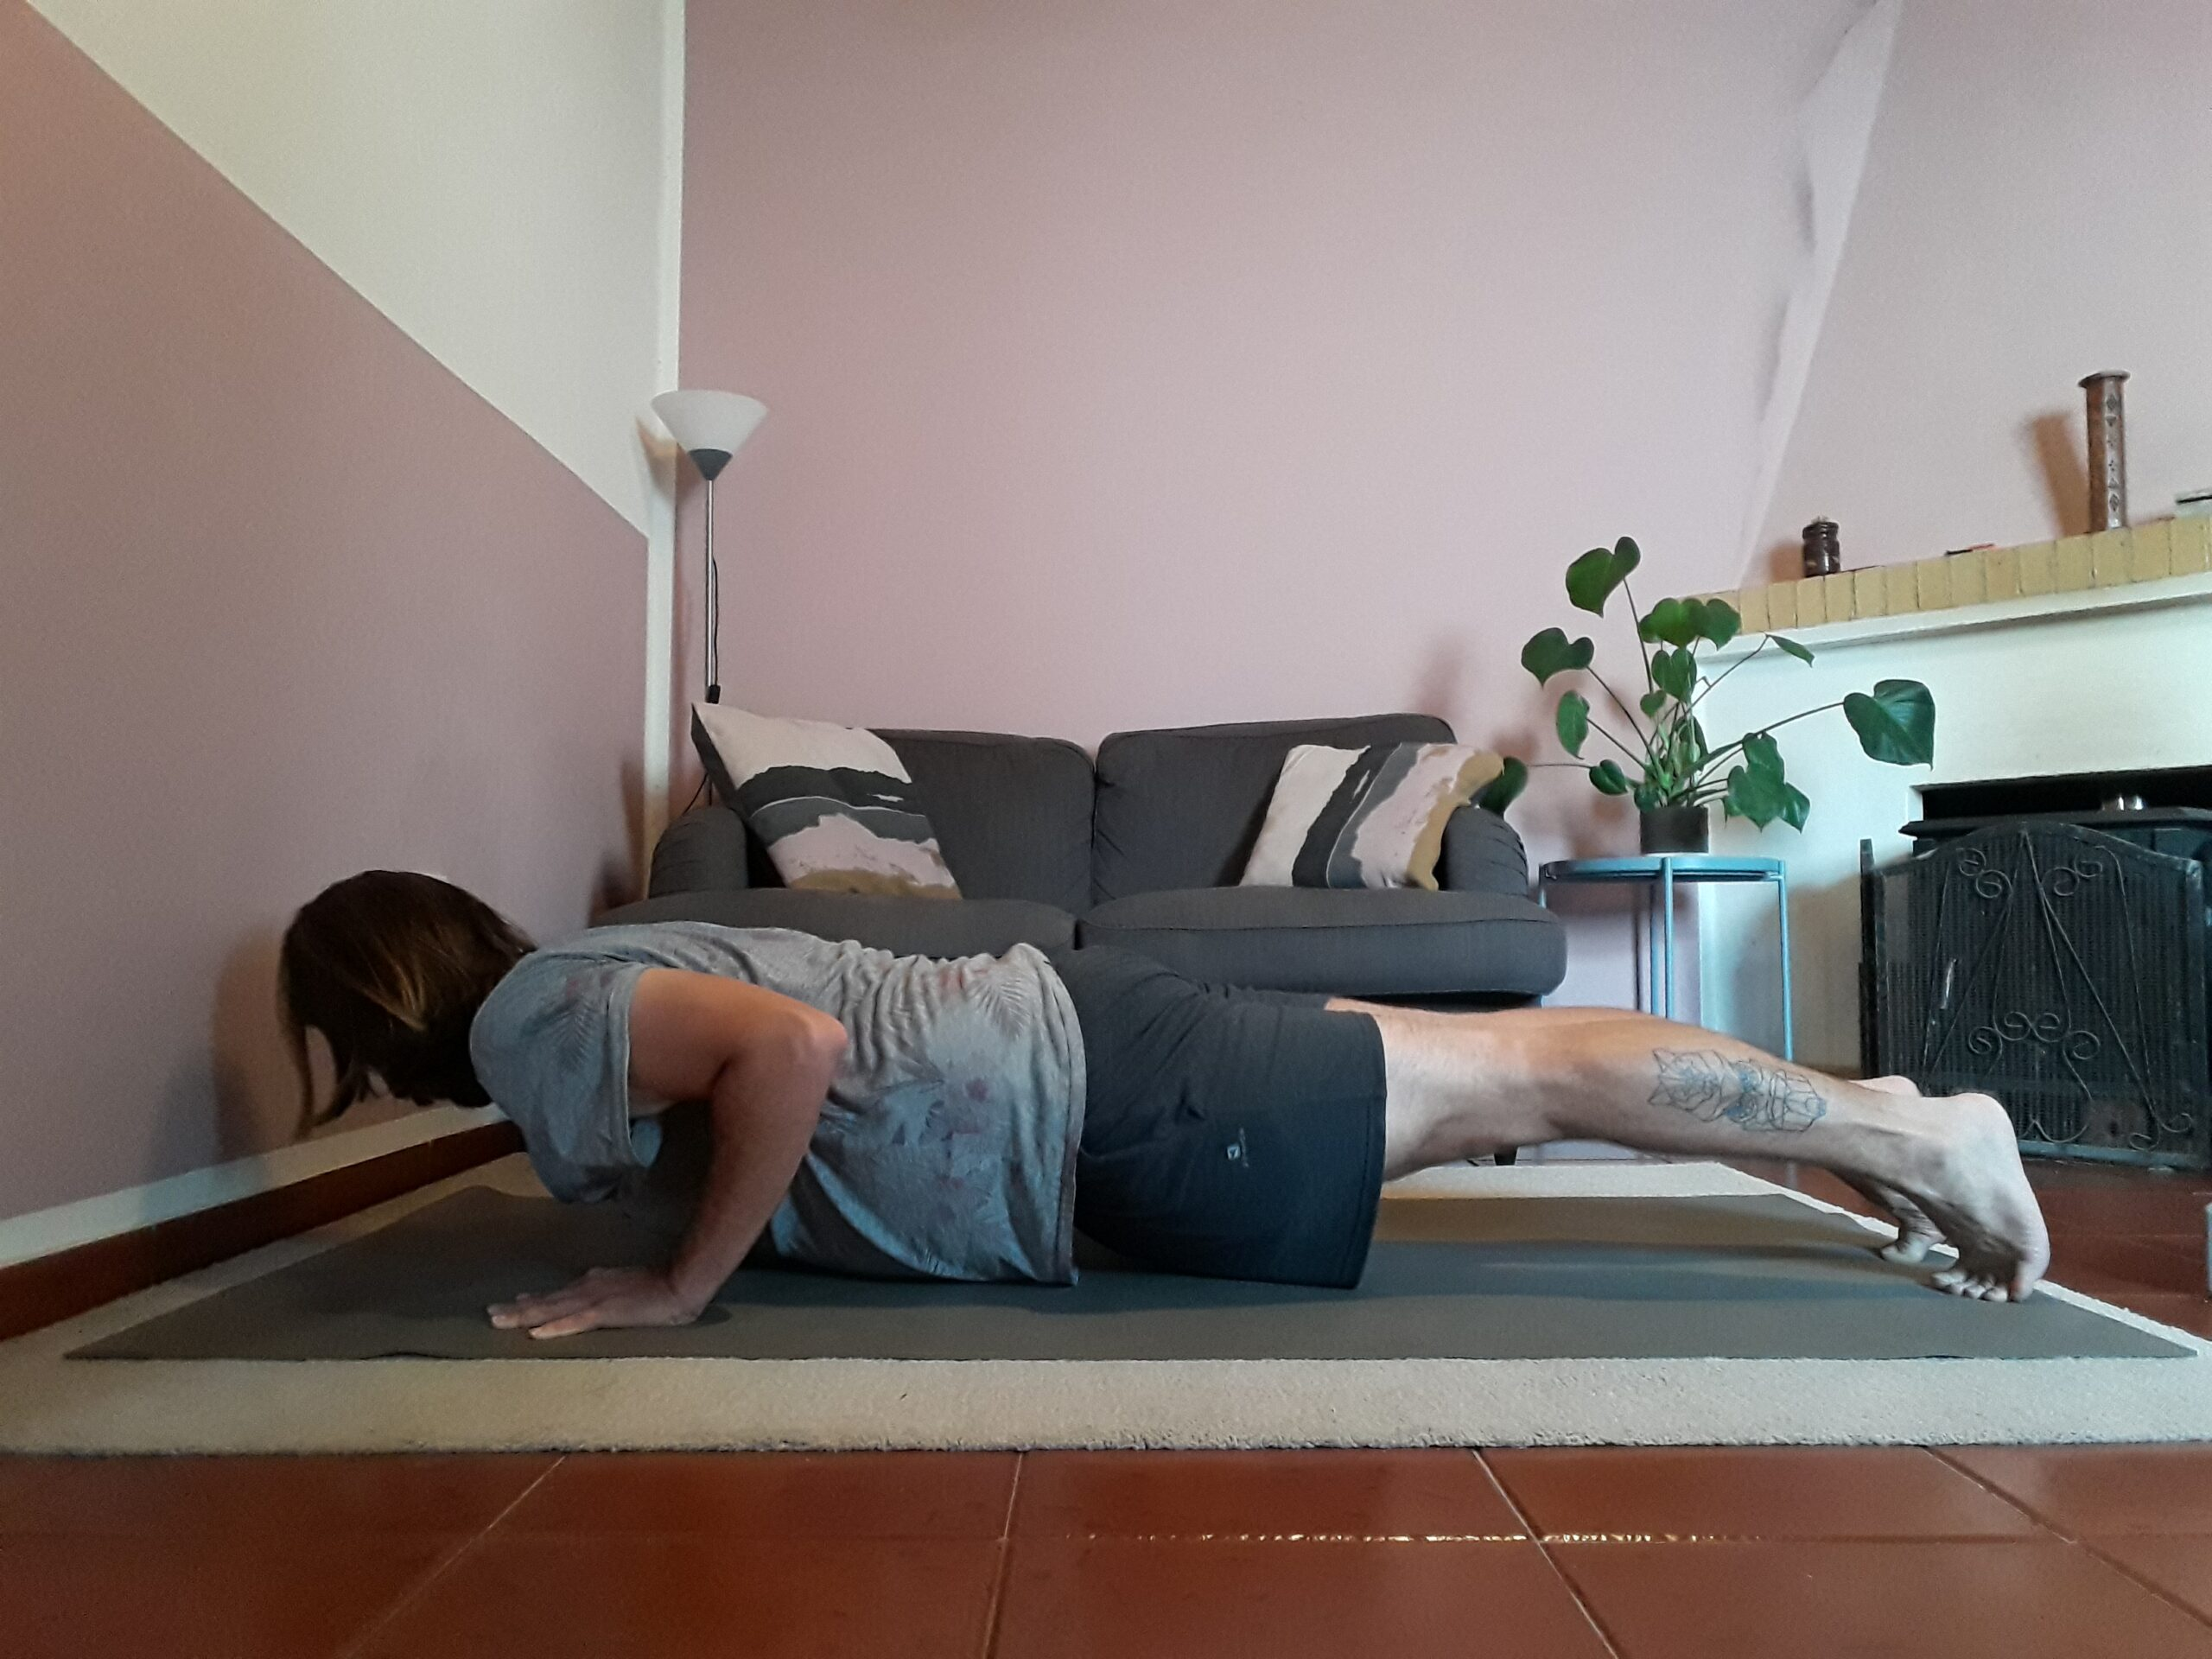 chaturanga as prep for crow pose